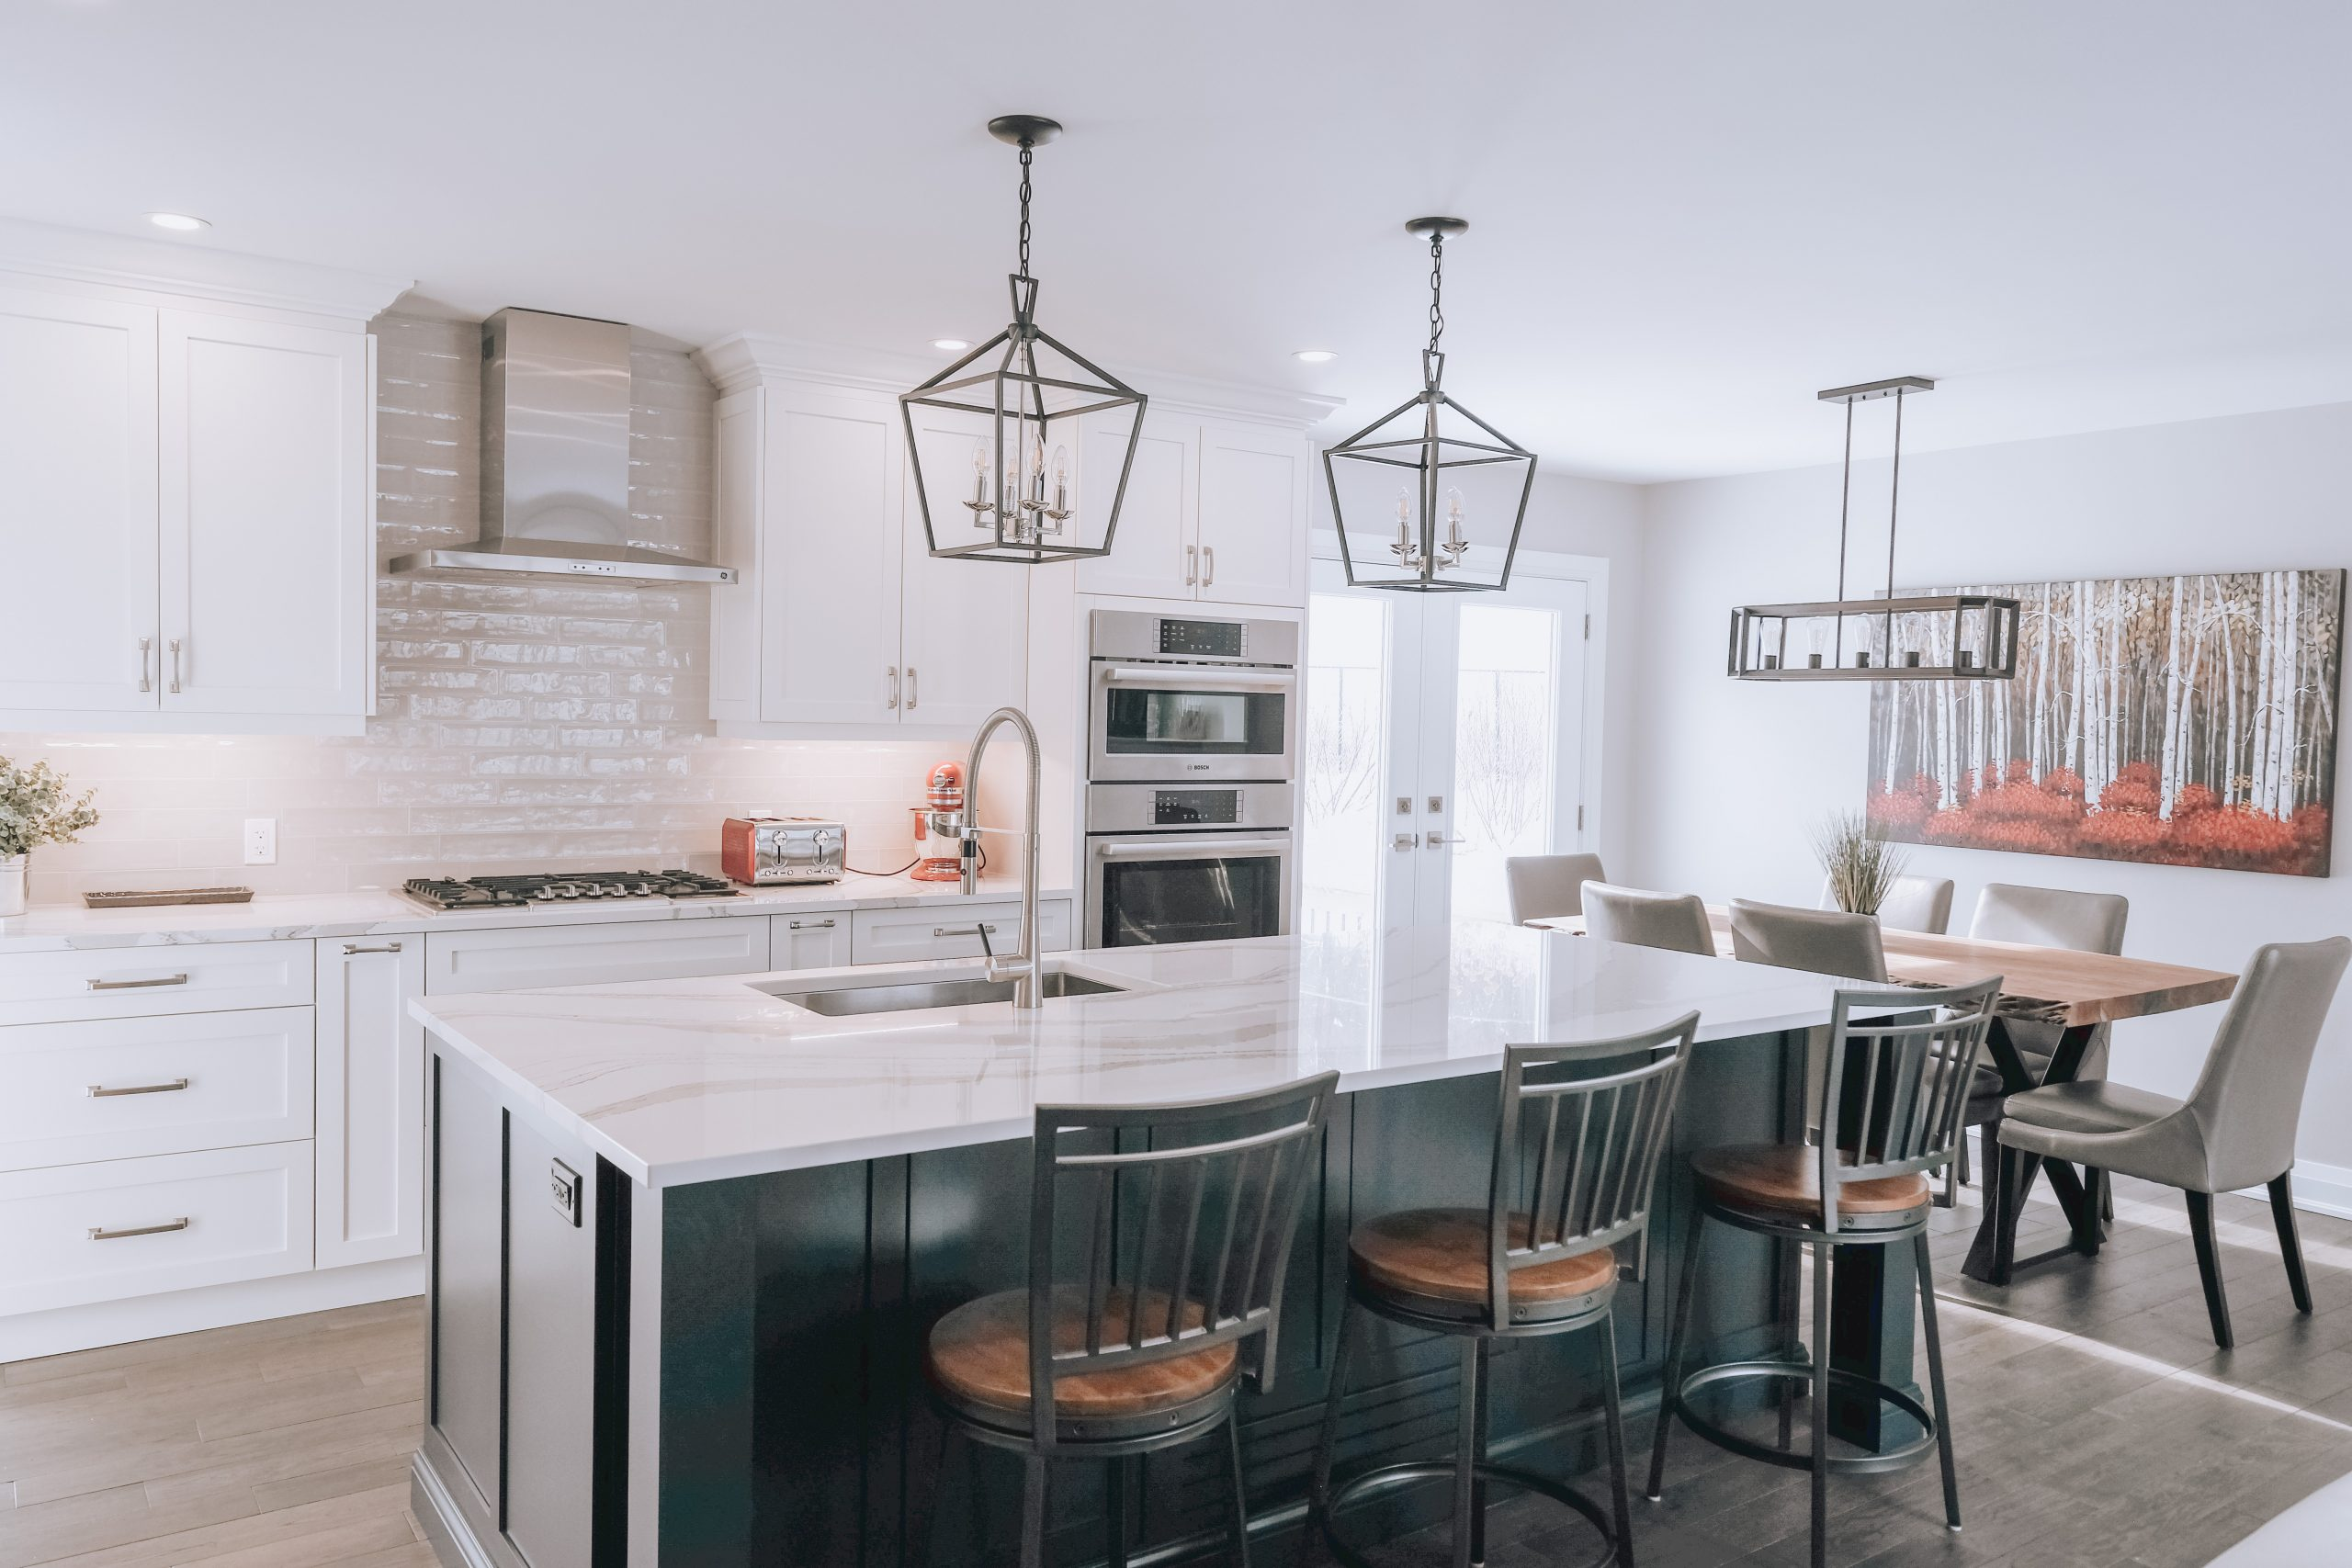 kitchen with red accent items